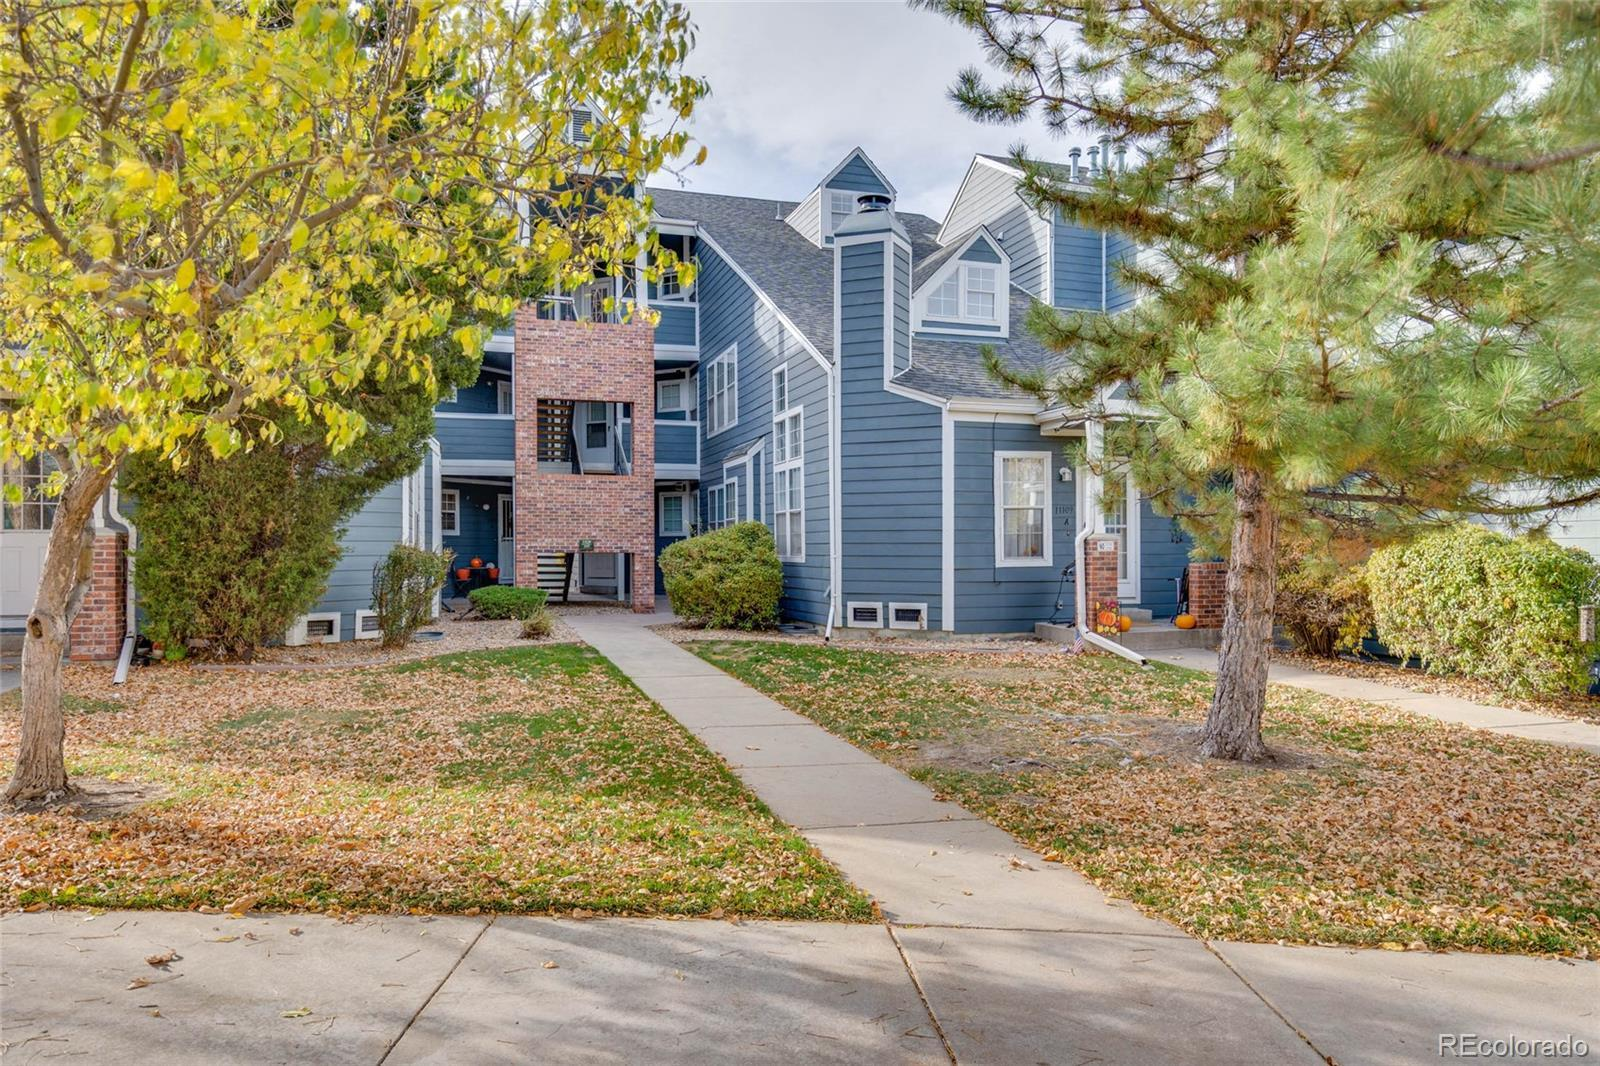 11109 Alcott Street #D, Westminster, CO 80234 - #: 1964814